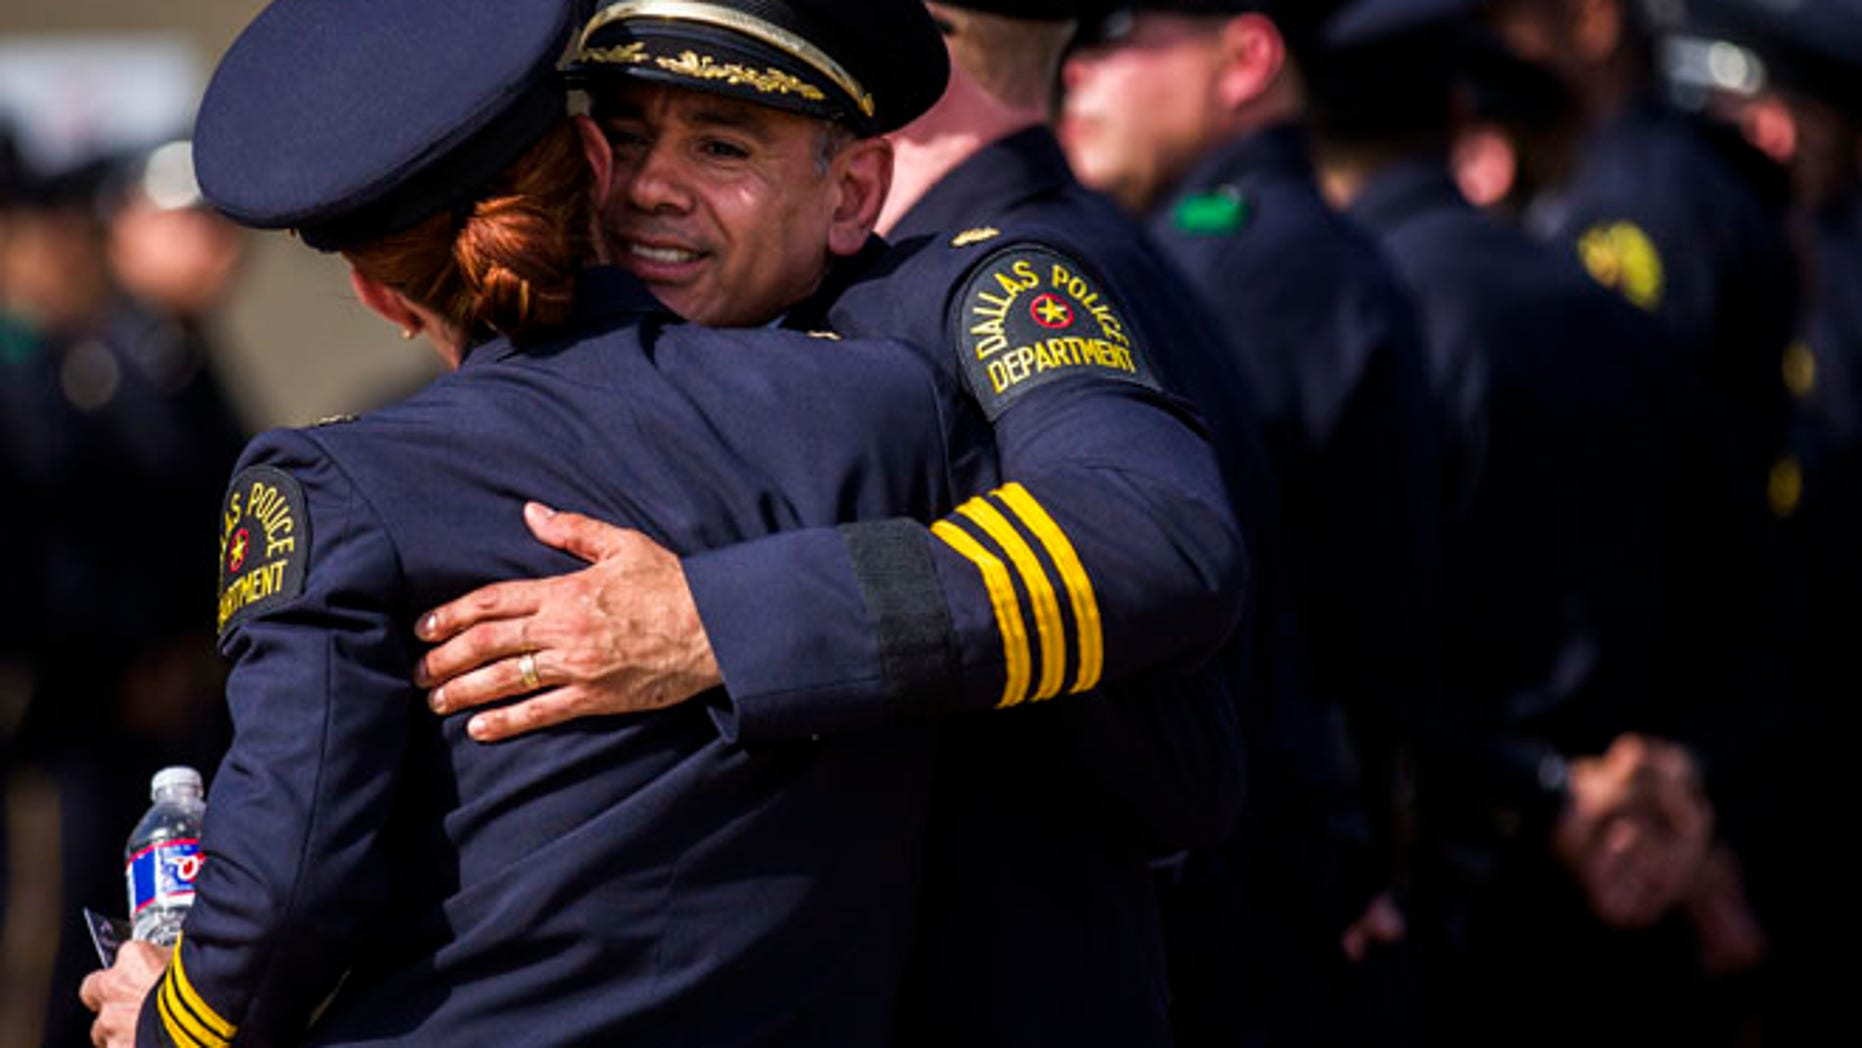 Police officers greet each other before a funeral service for Dallas police officer Patrick Zamarripa on Saturday, July 16, 2016, in Fort Worth, Texas.